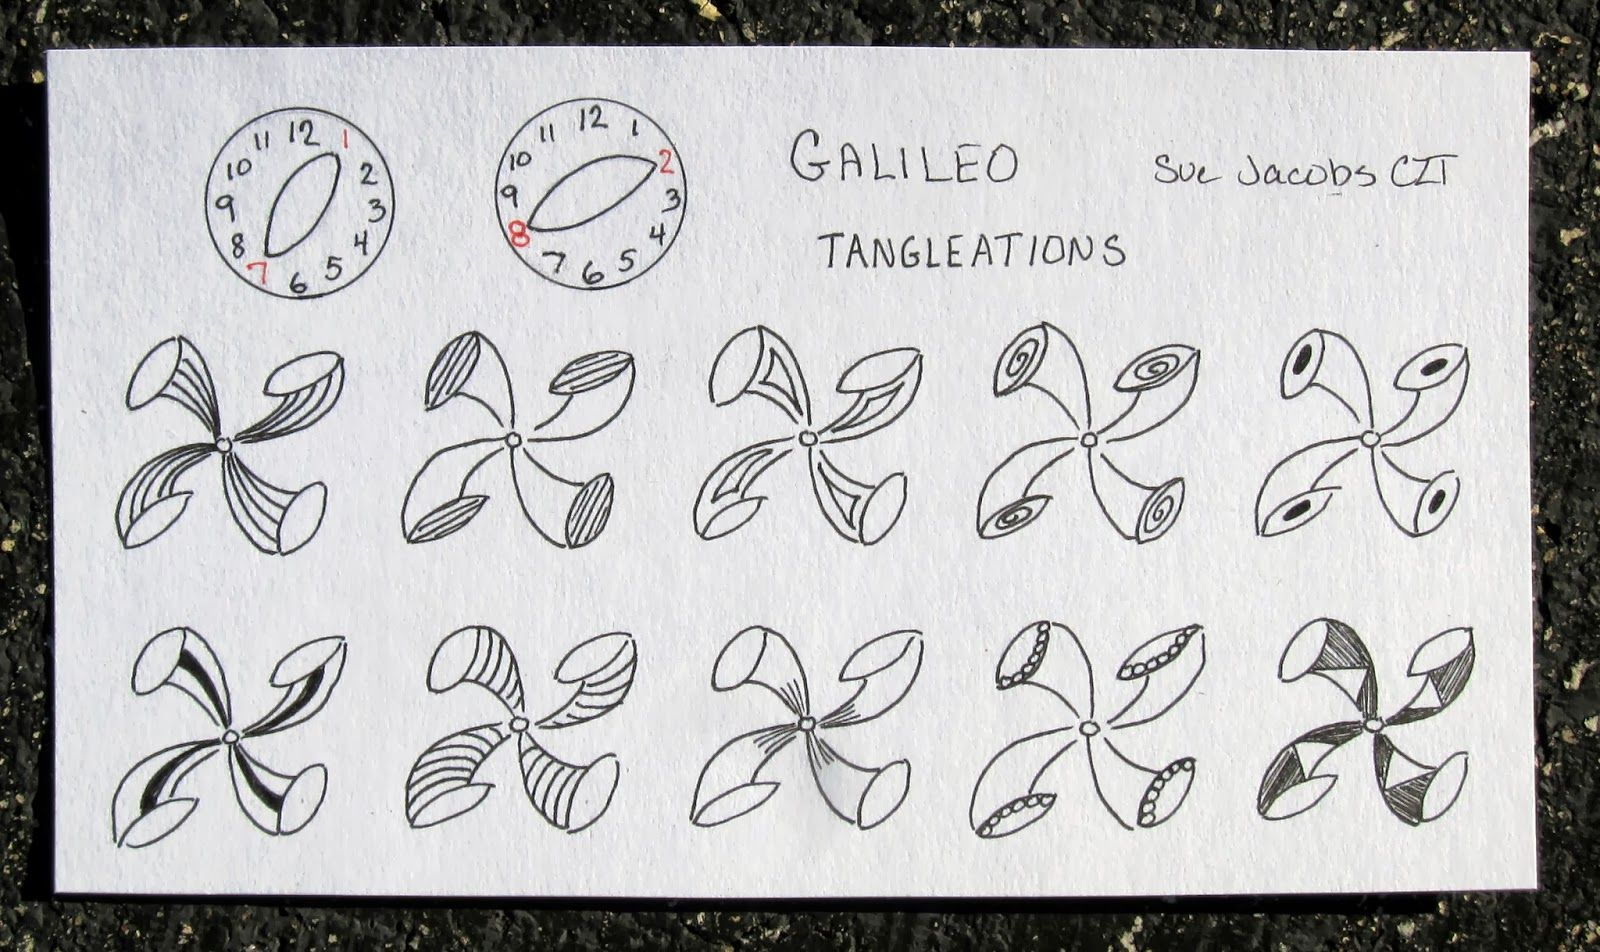 Sue's tangle trips: tangle pattern gallery--Galileo tangleations